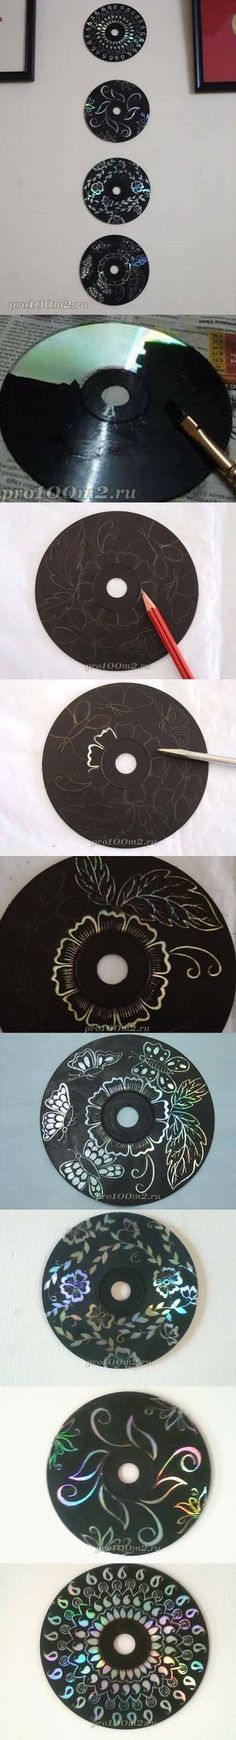 Paint over old CD, scratch off to make a picture/pattern etc.